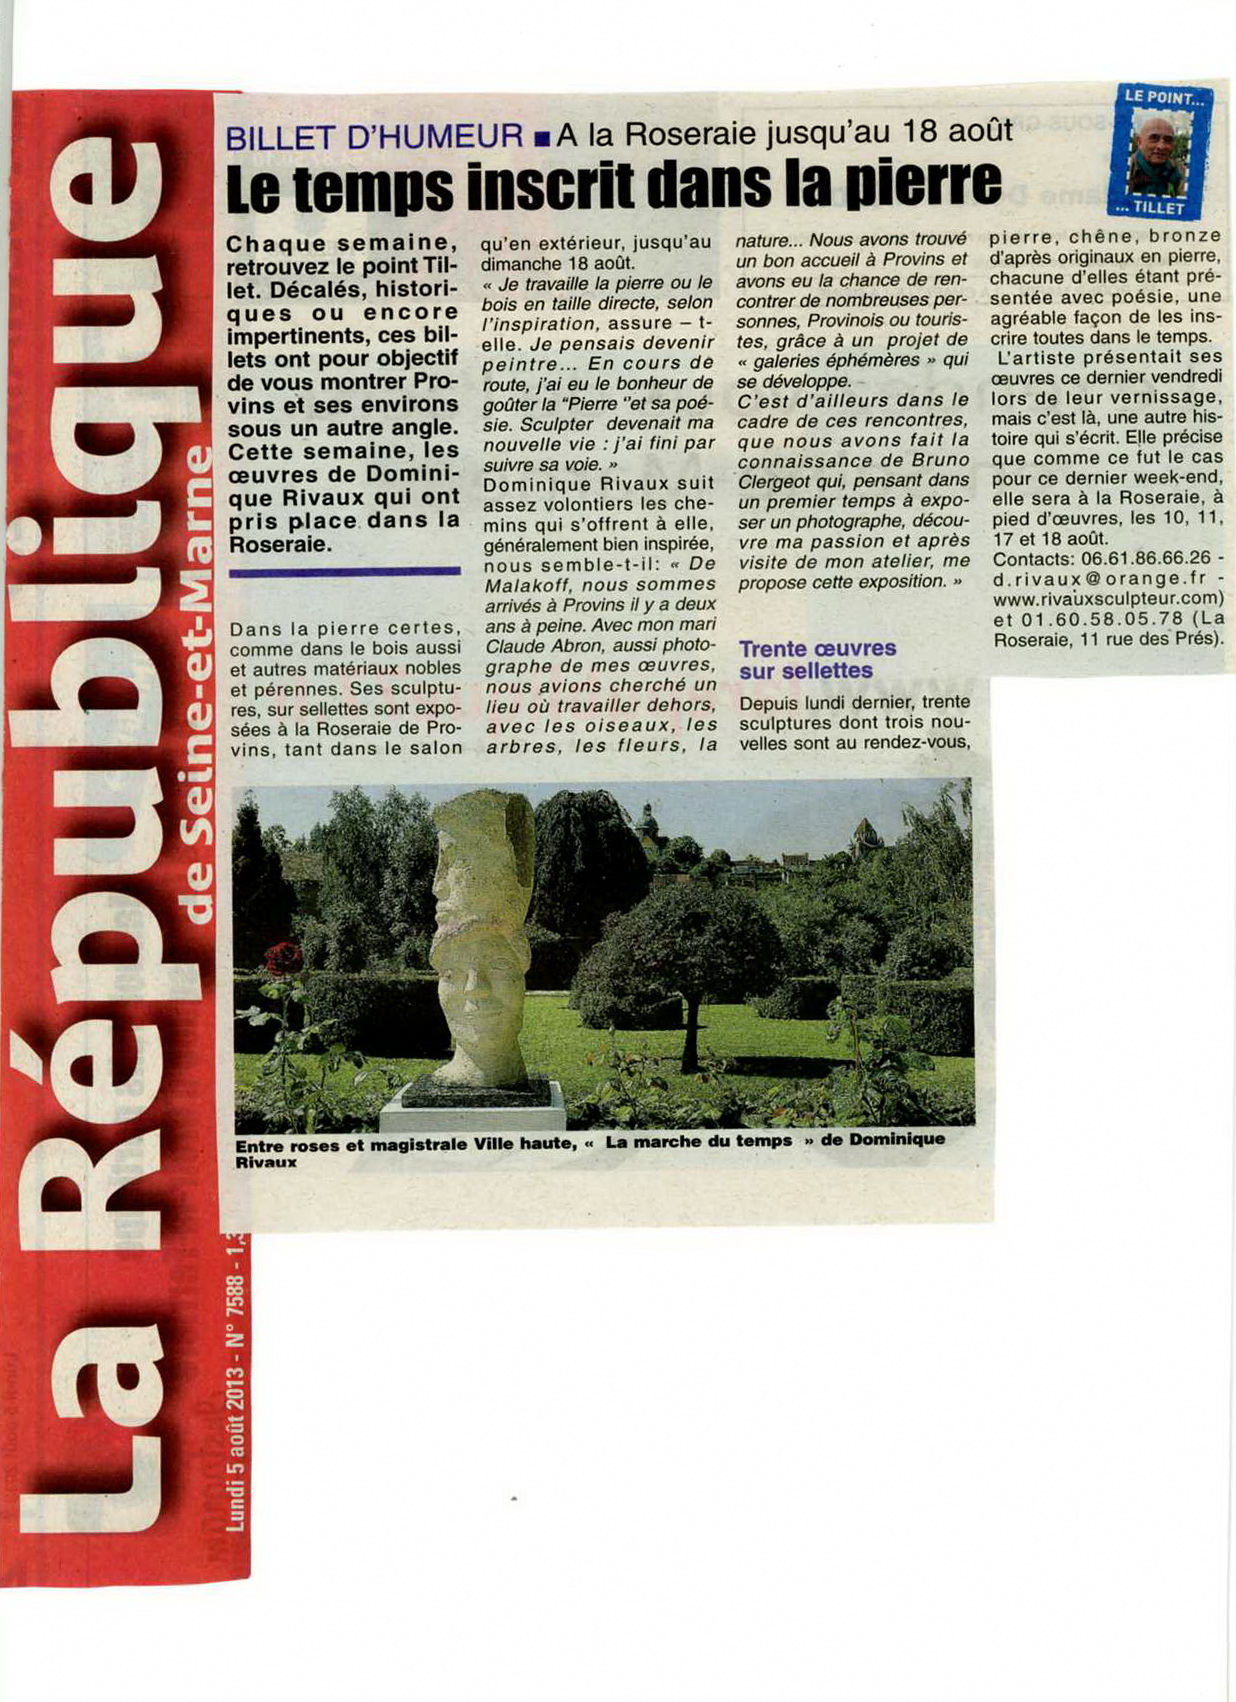 article de Rémy TILLET - La Republique - Exposition La ROSERAIE - Provins 2013